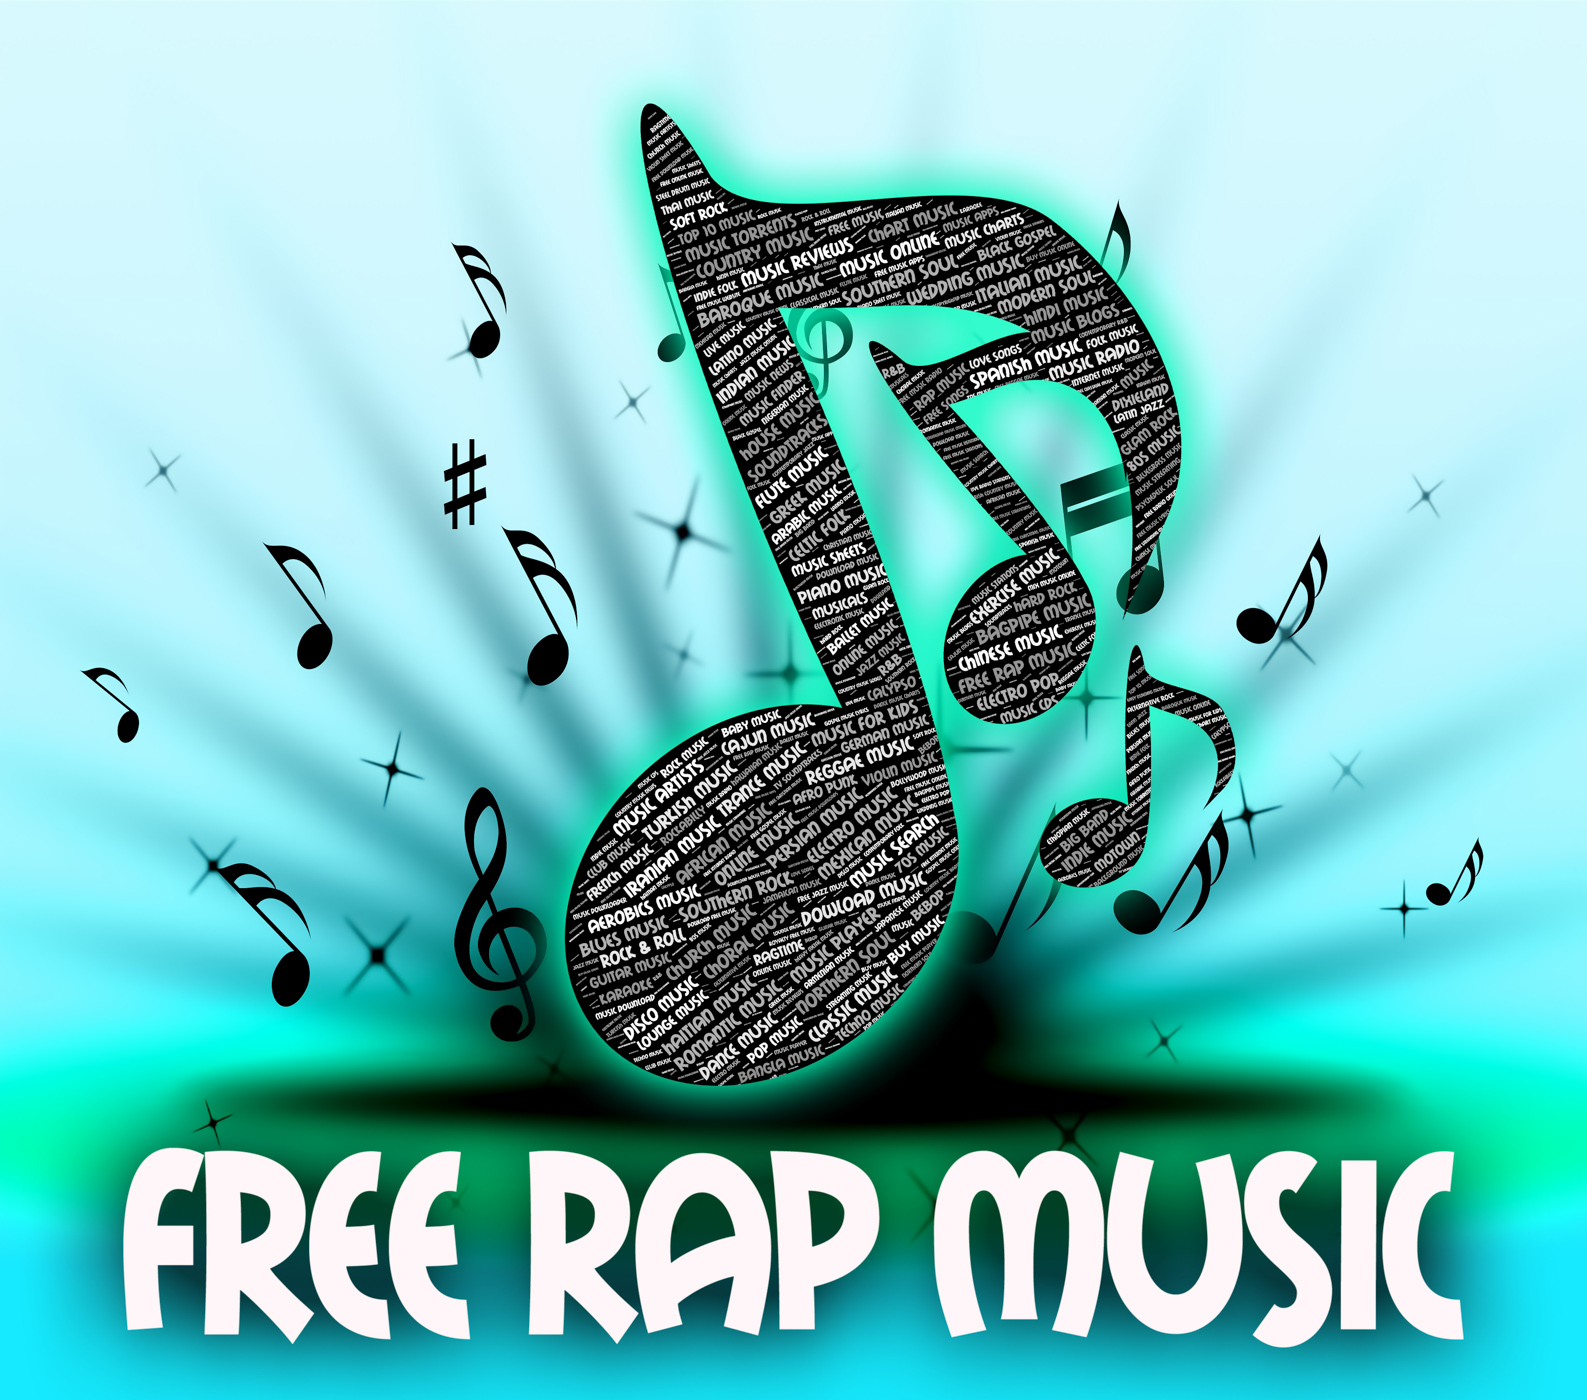 Free rap music shows no cost and acoustic photo